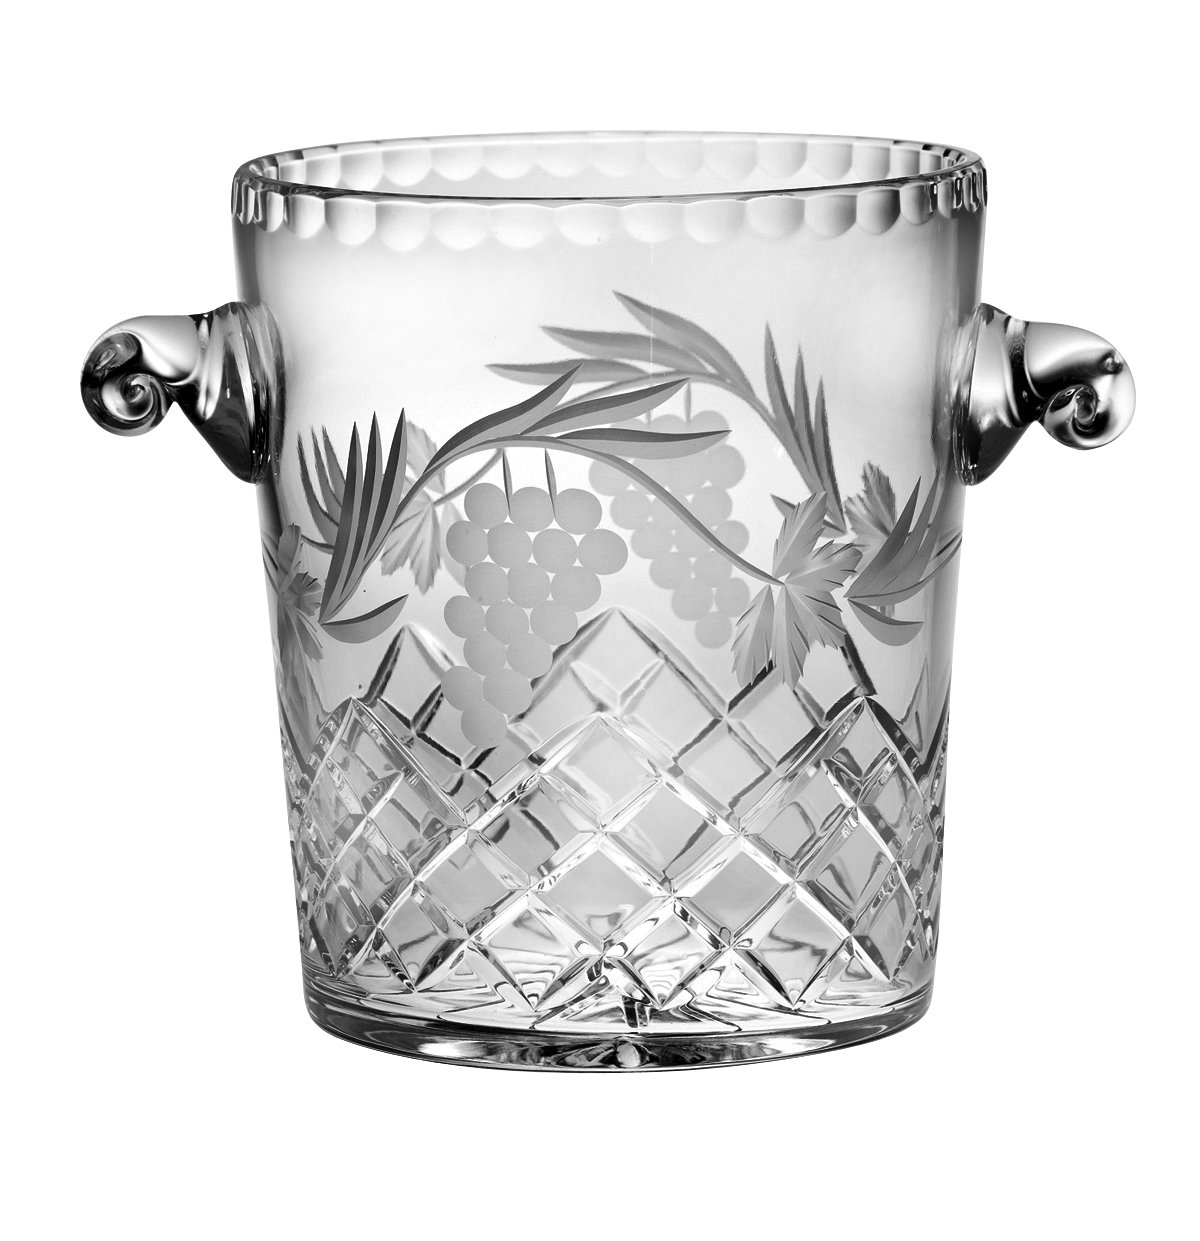 Barski - Hand Cut - Mouth Blown - Crystal - Ice Bucket - 8.5'' H - With Grapevine Design - Made in Europe